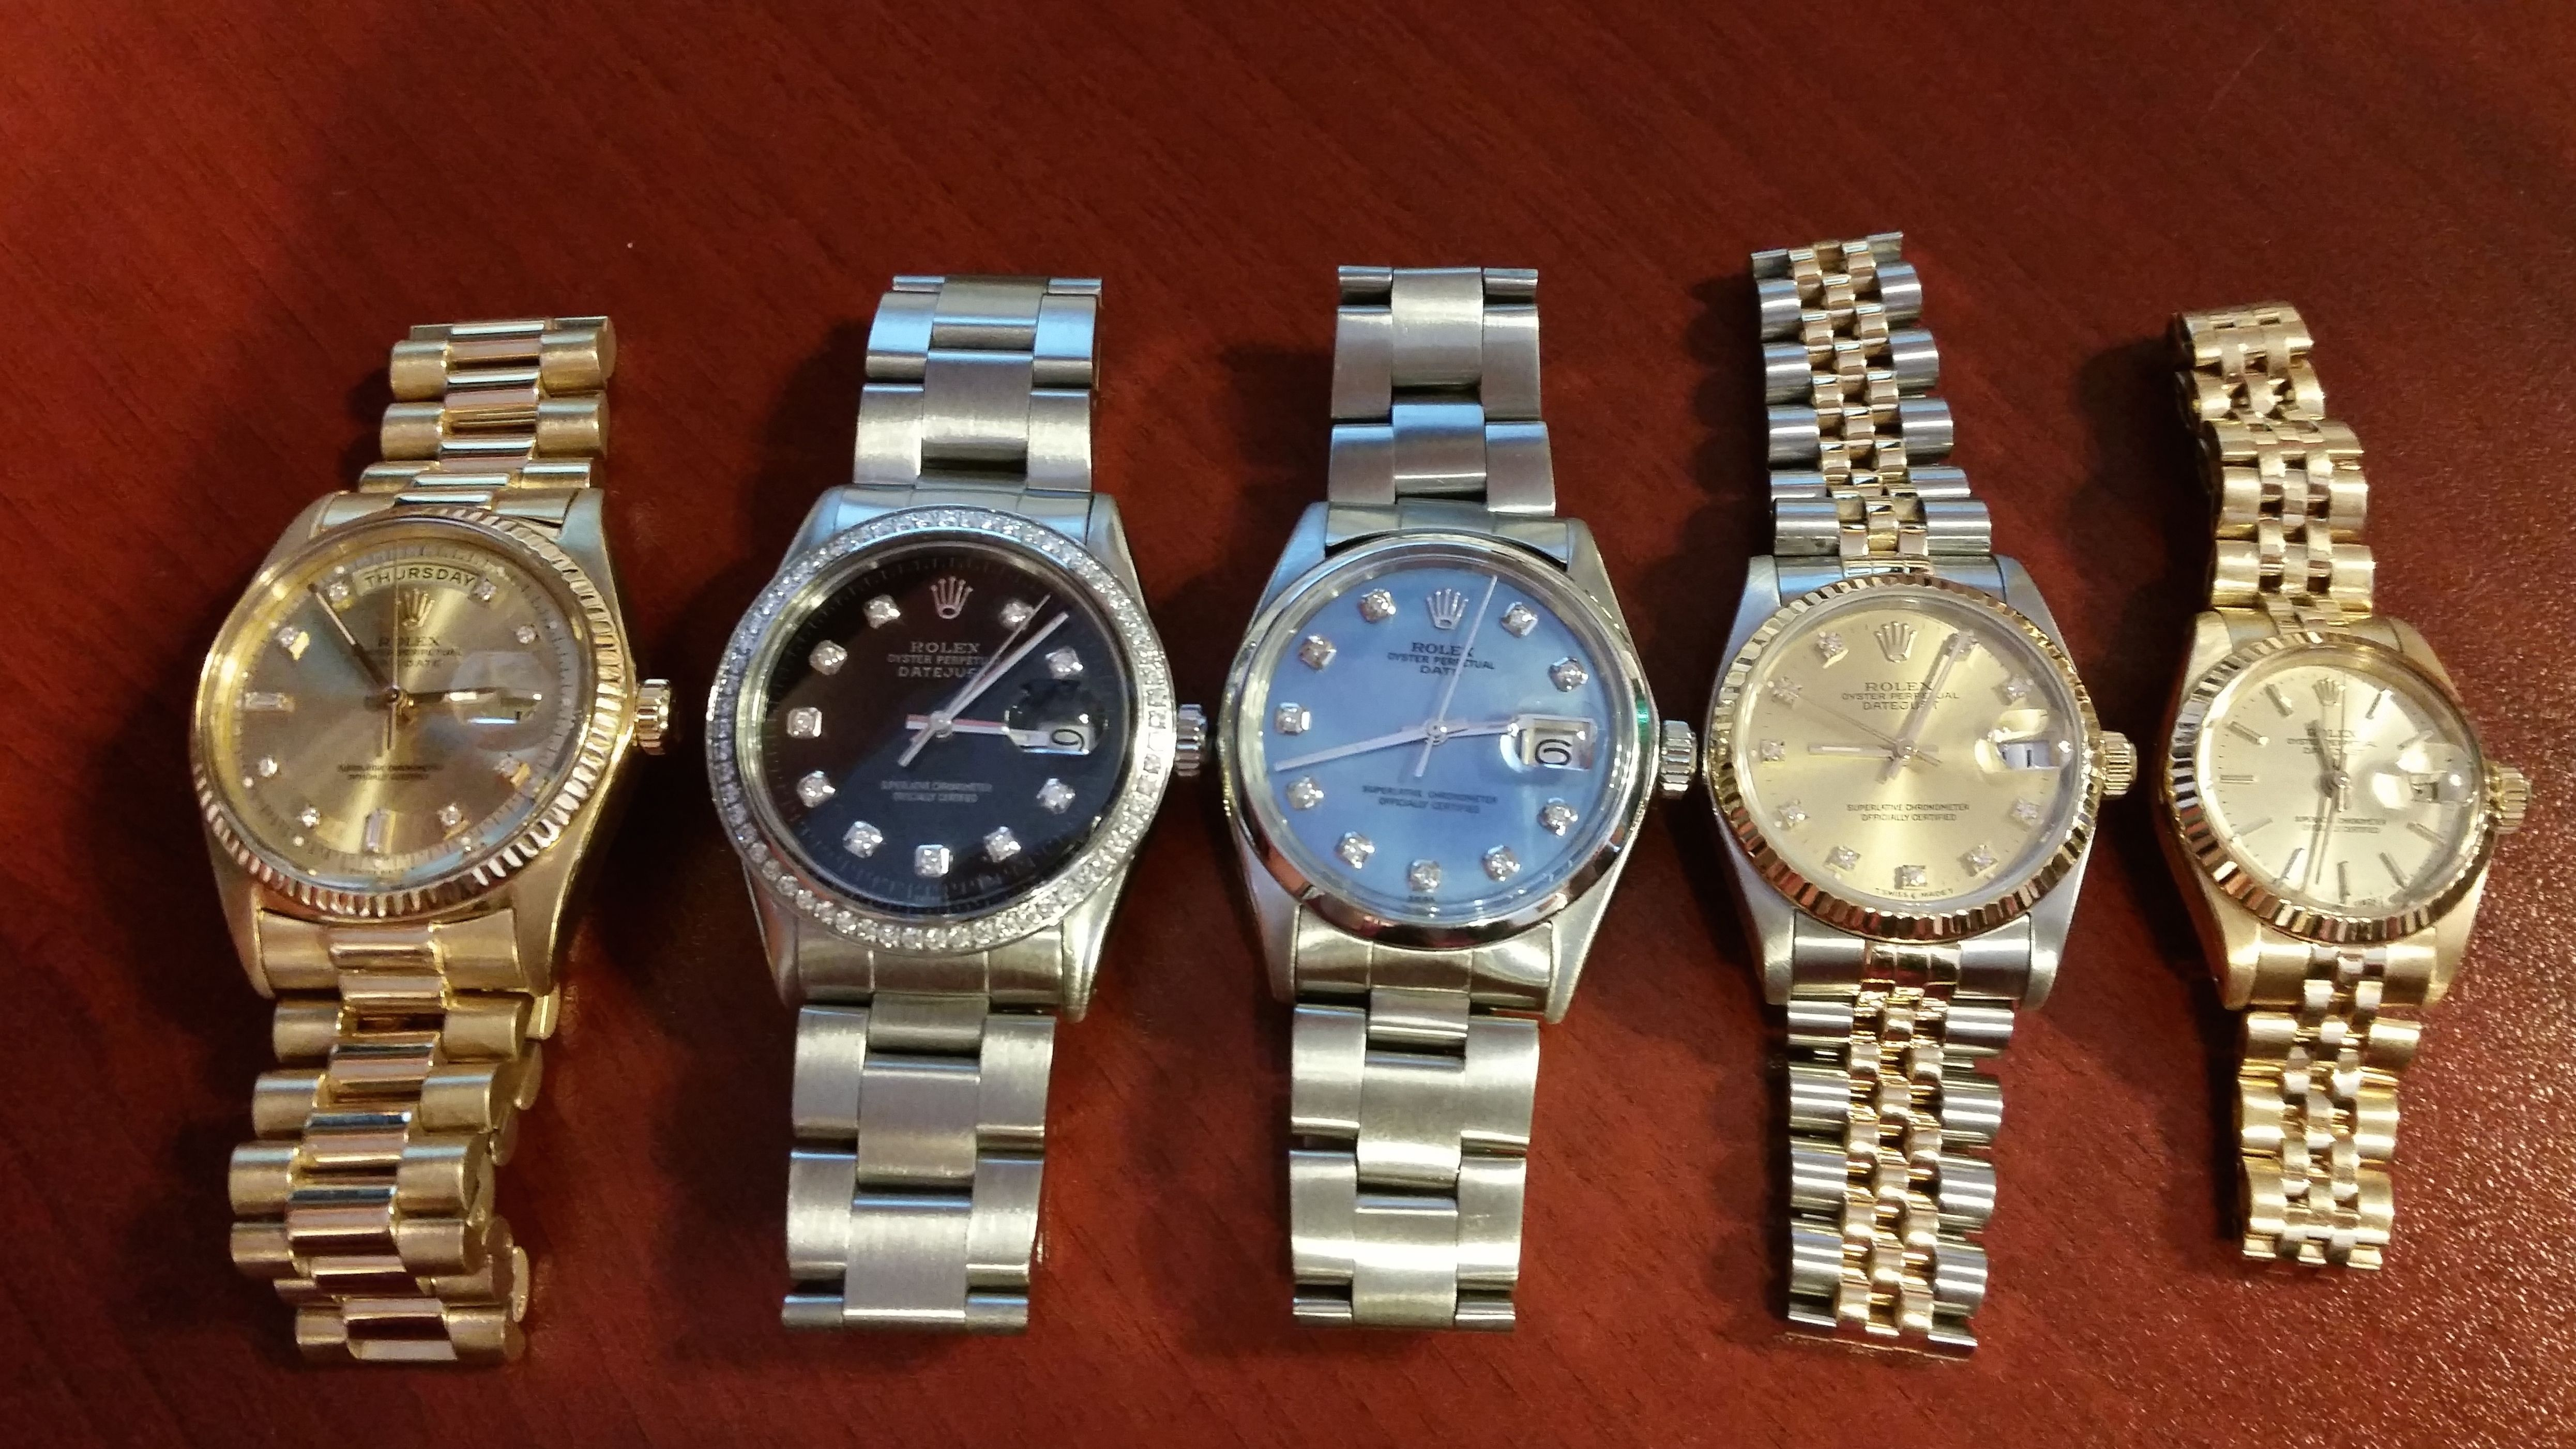 quick comparison of the sizes of Rolex watches #datejust #daydate #date #midsize #ladies #mens #reference